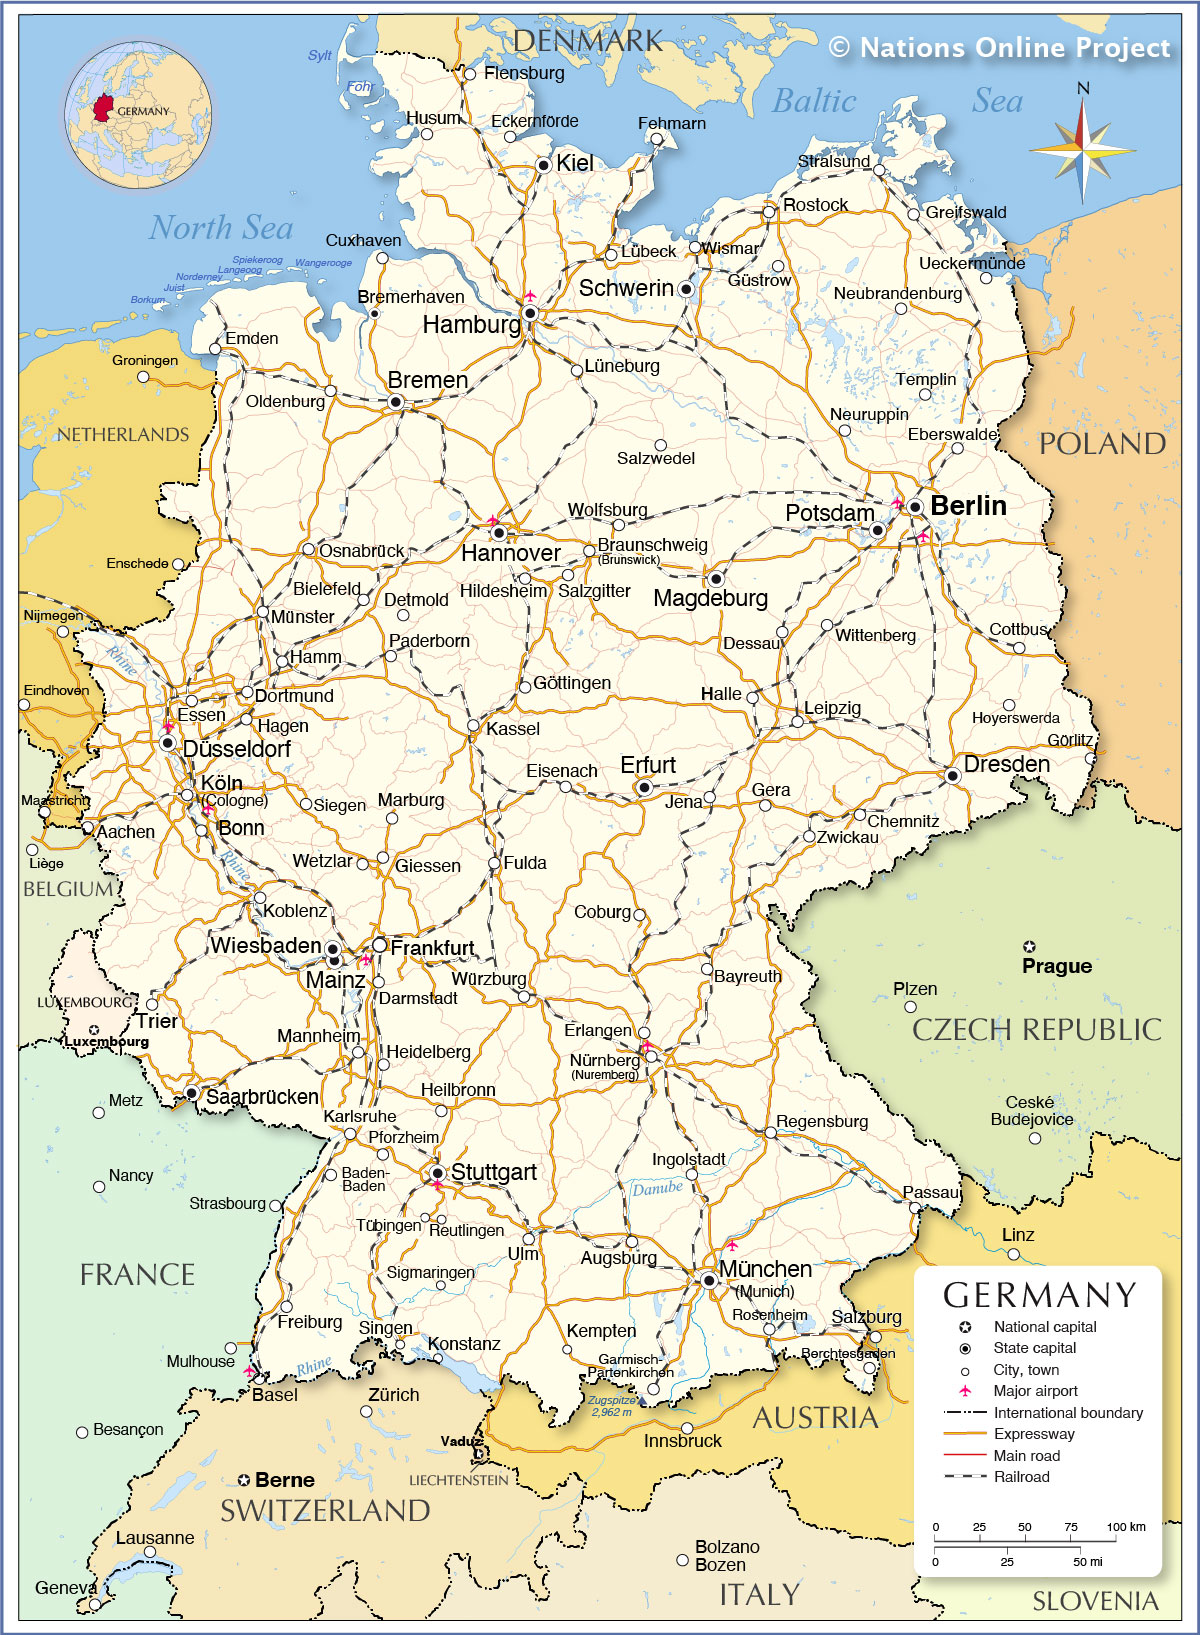 Map Of Germany From Nationsonline 1